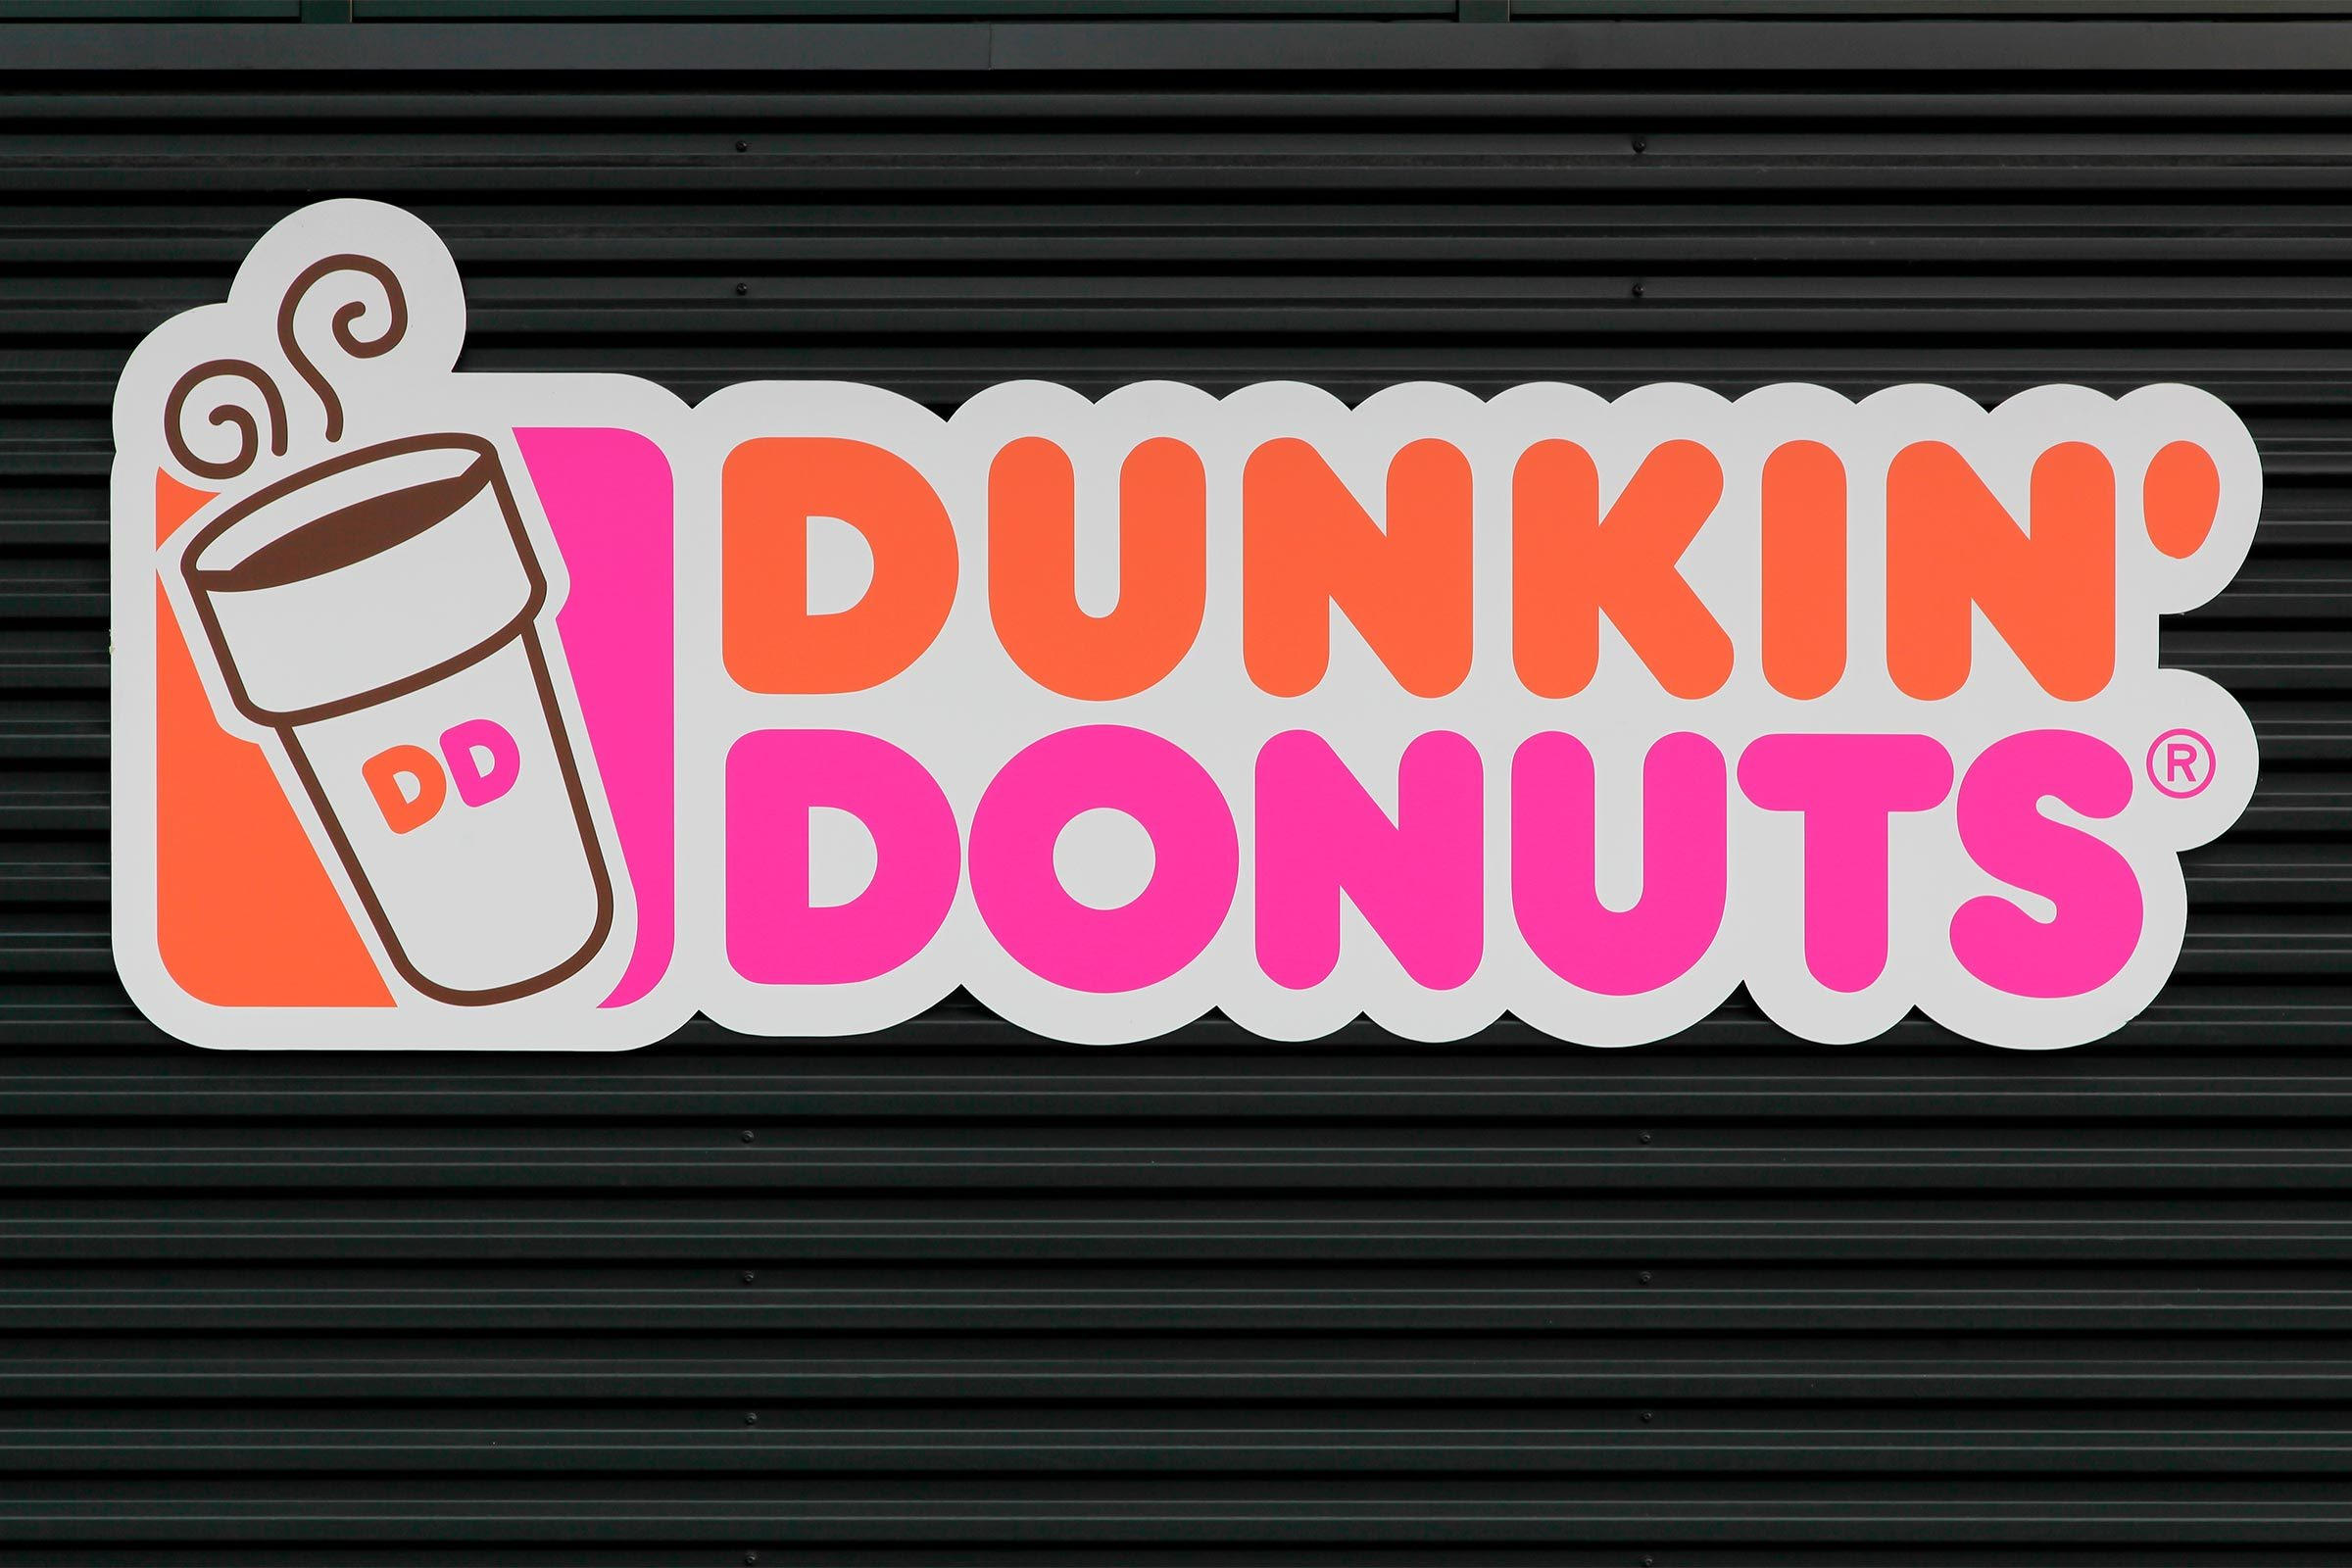 Dunkin' Donuts sign on a wall.